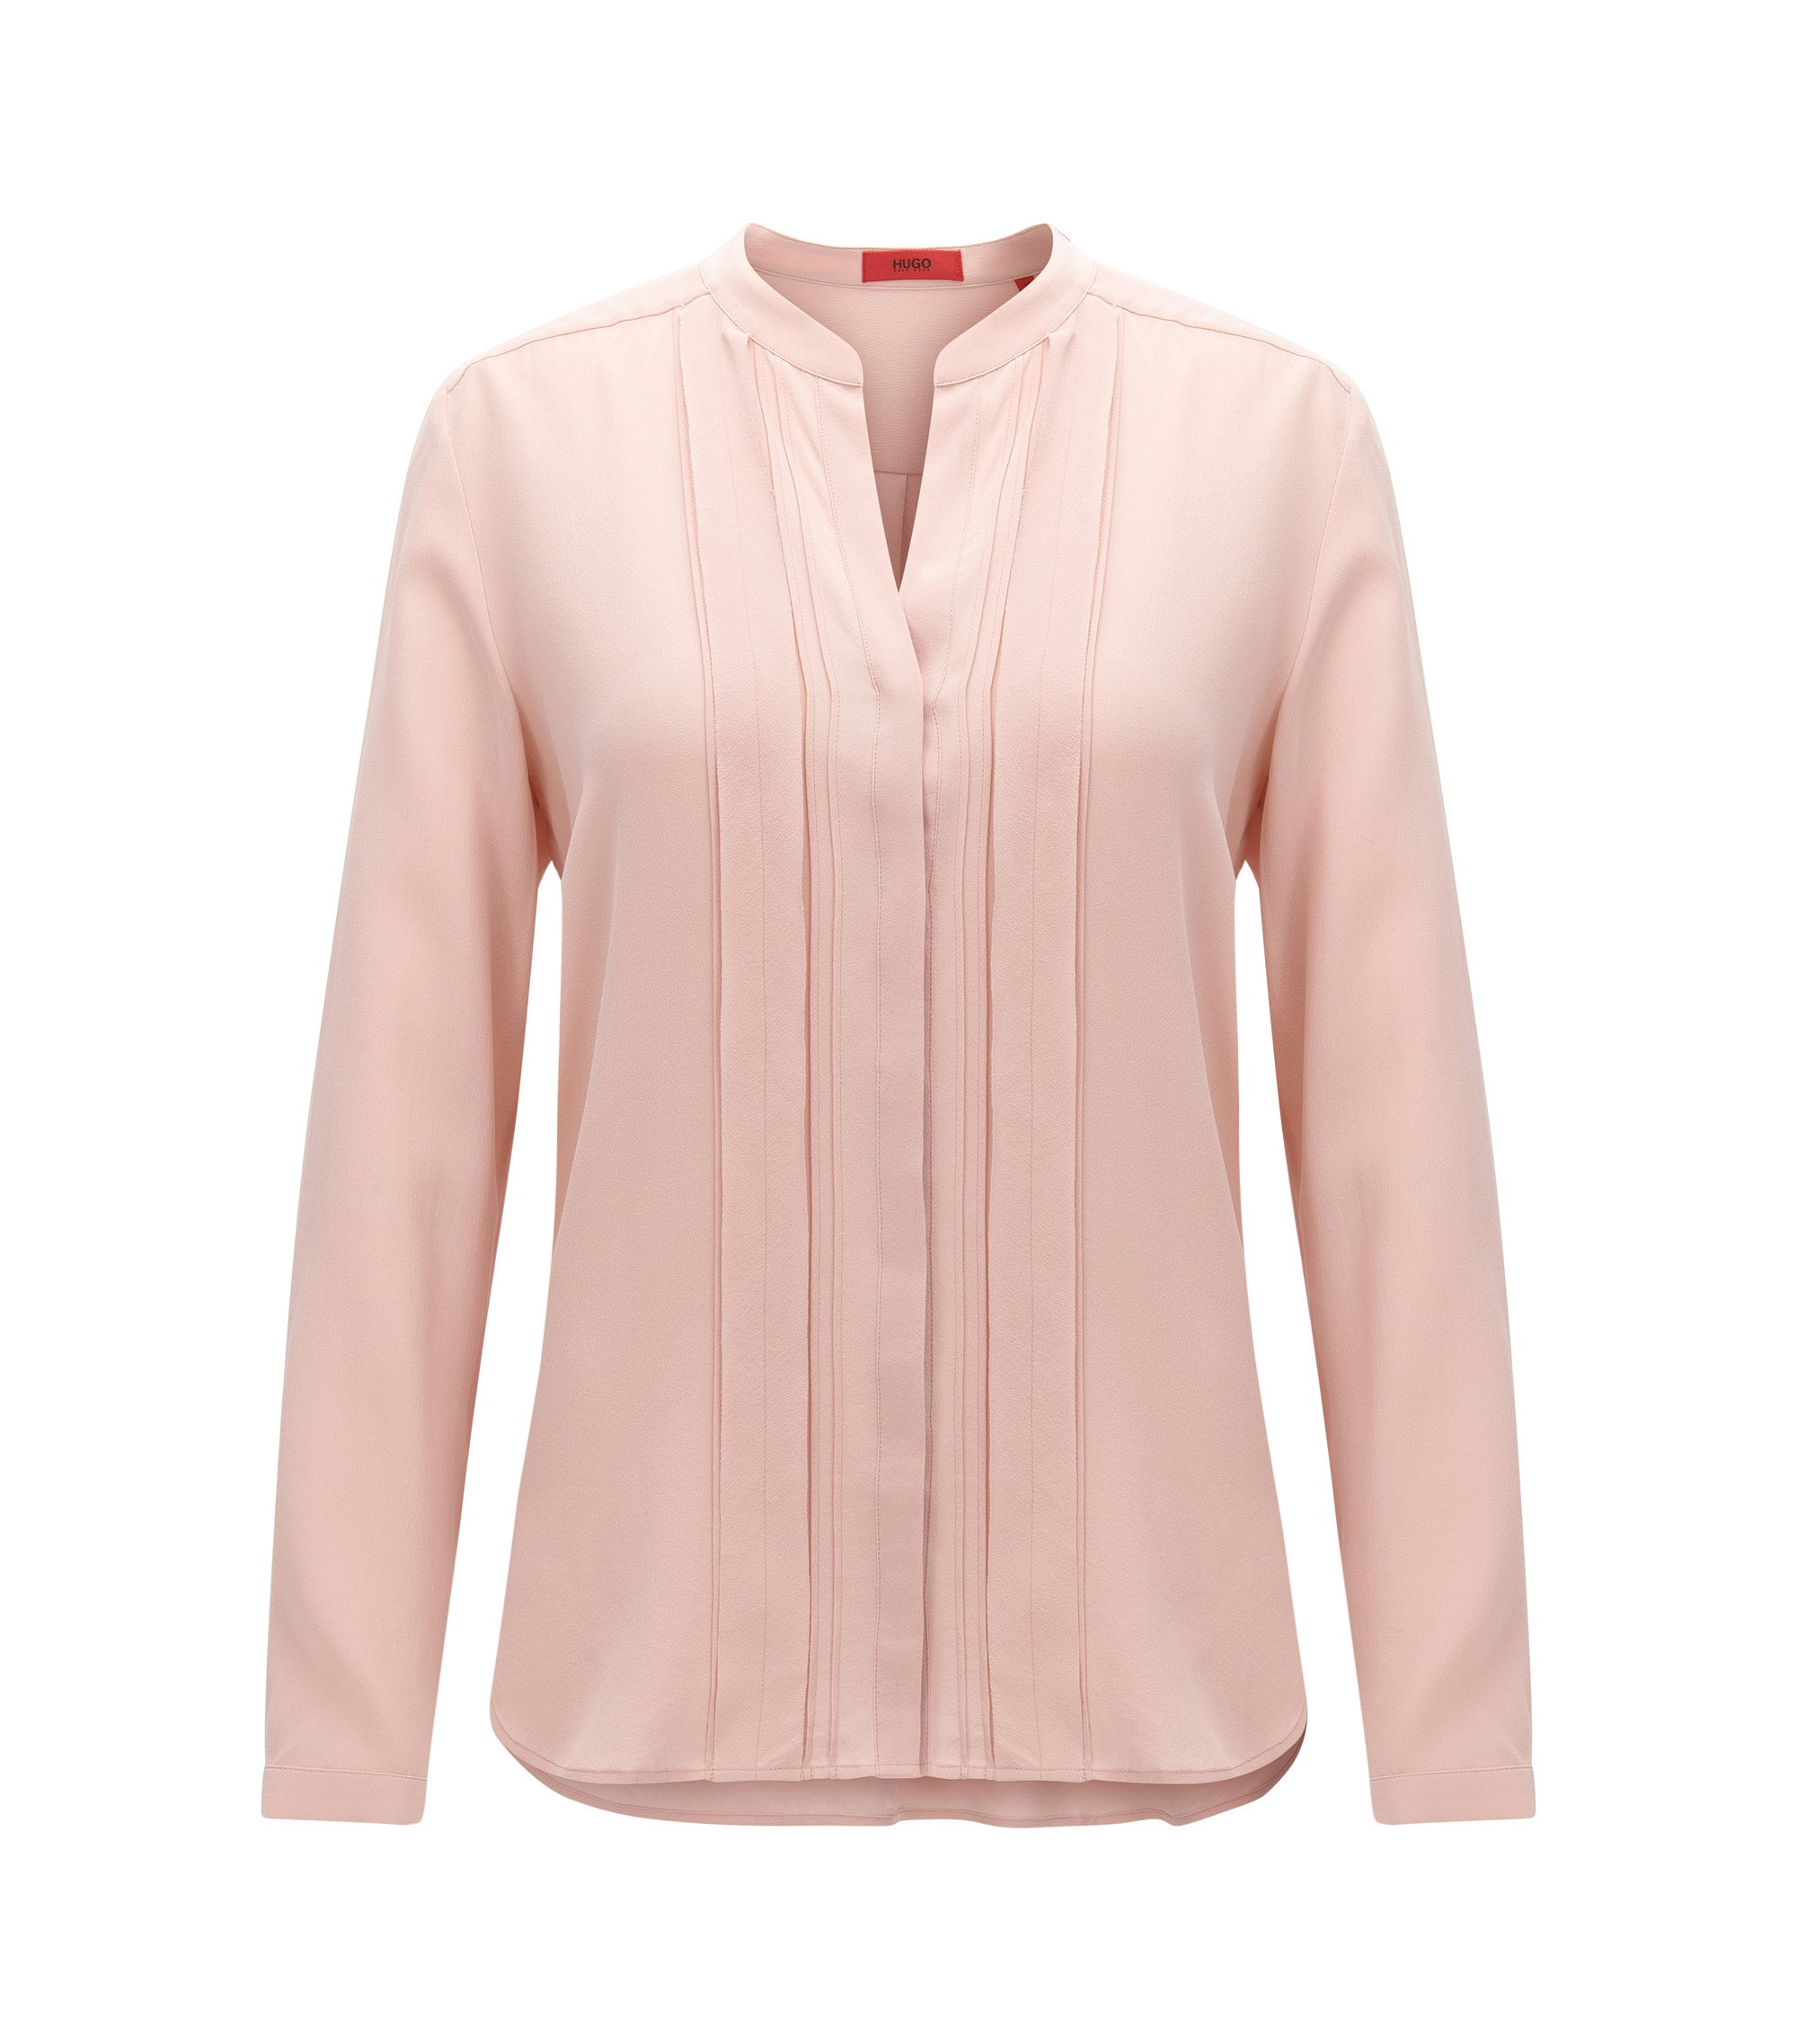 Relaxed-Fit Seiden-Bluse mit Chiffon-Detail, Hellrosa